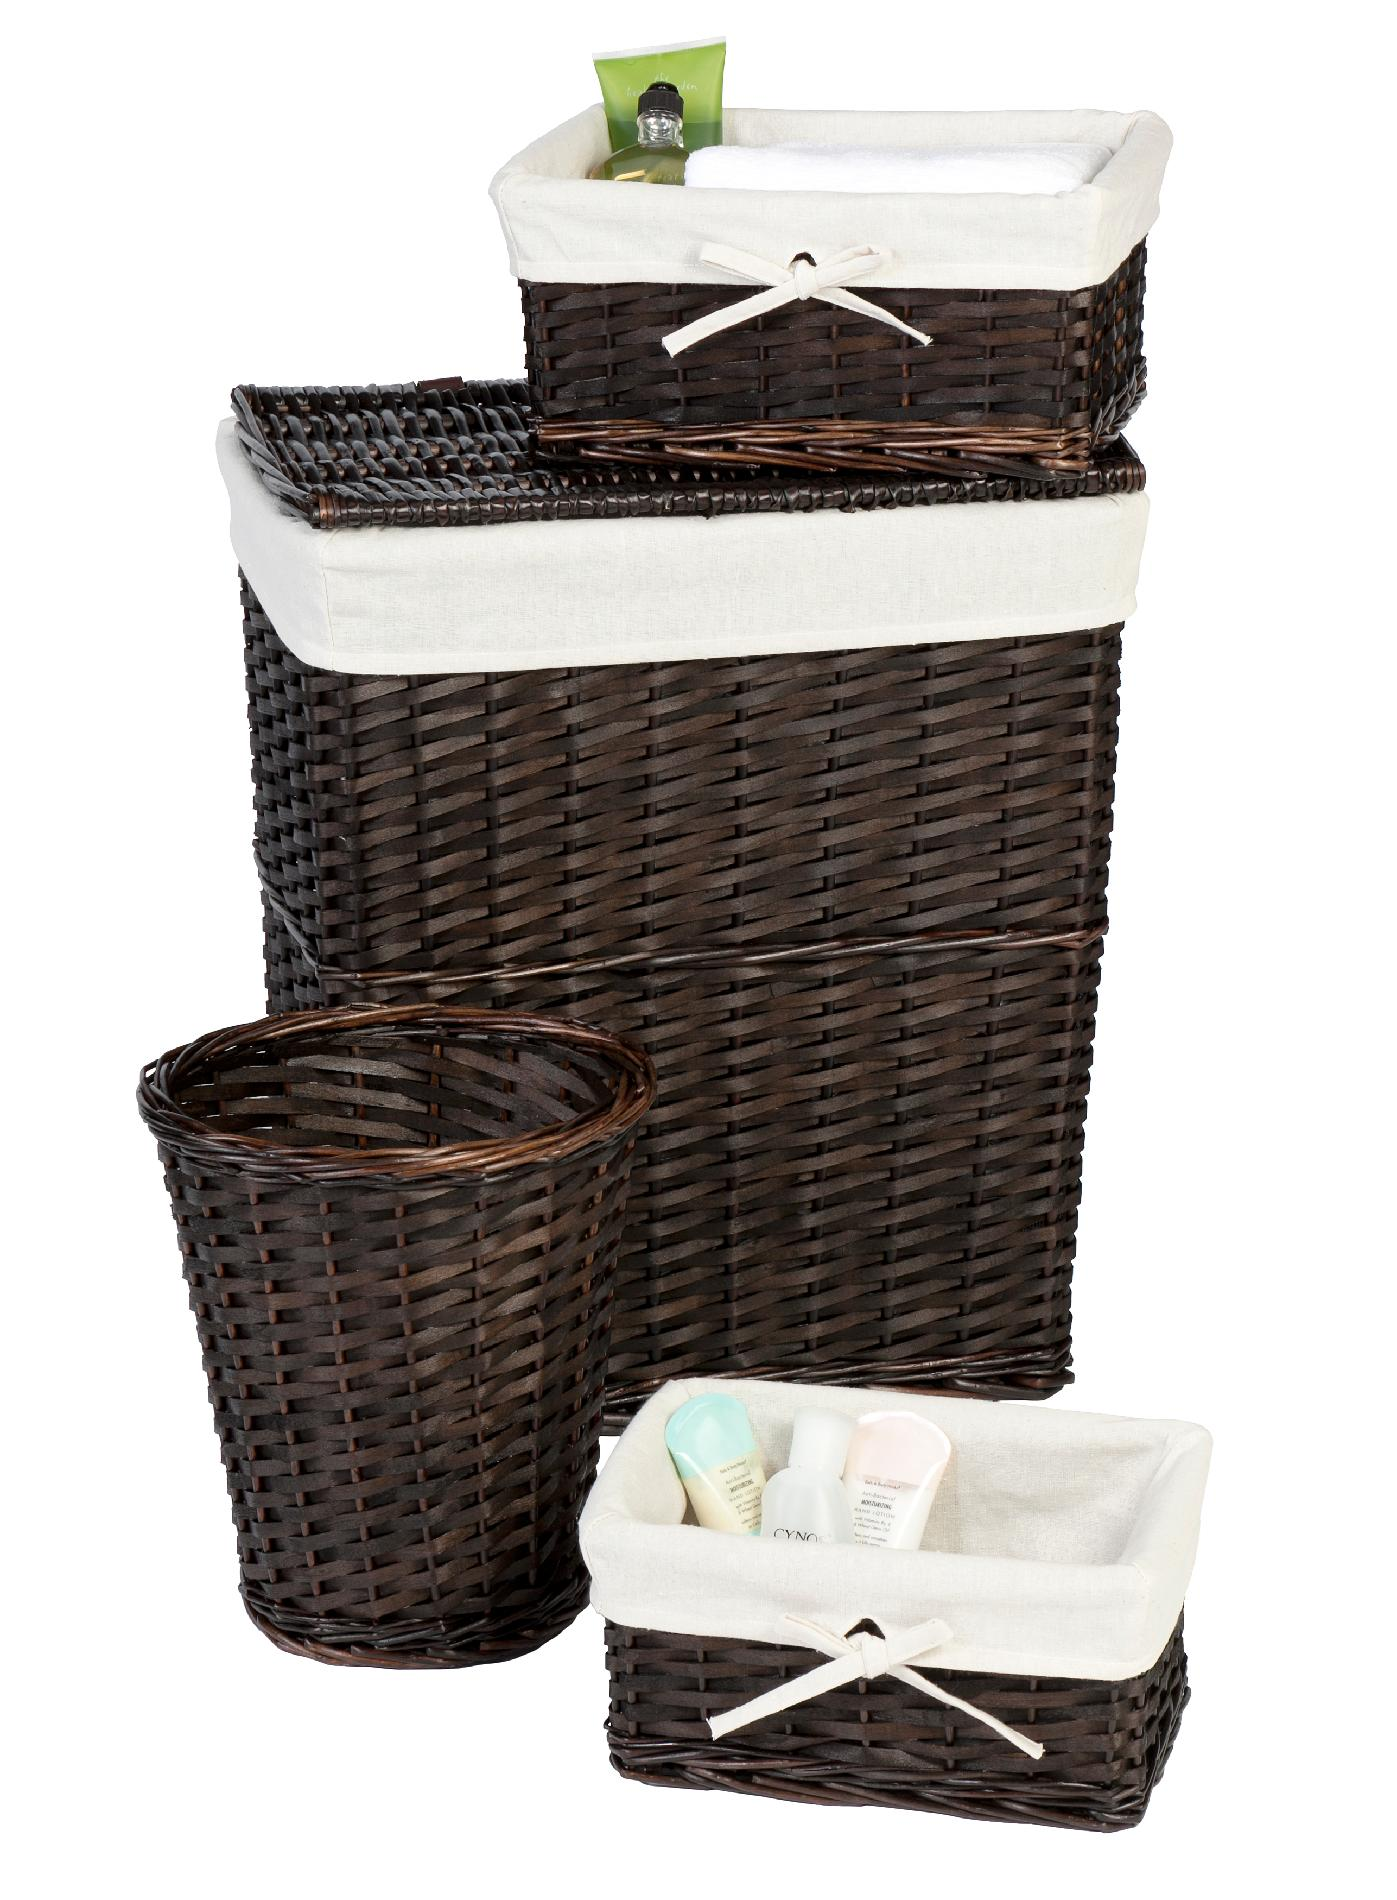 Black Wicker Hamper Rubbermaid Hip Hugger Laundry Basket Home Furniture